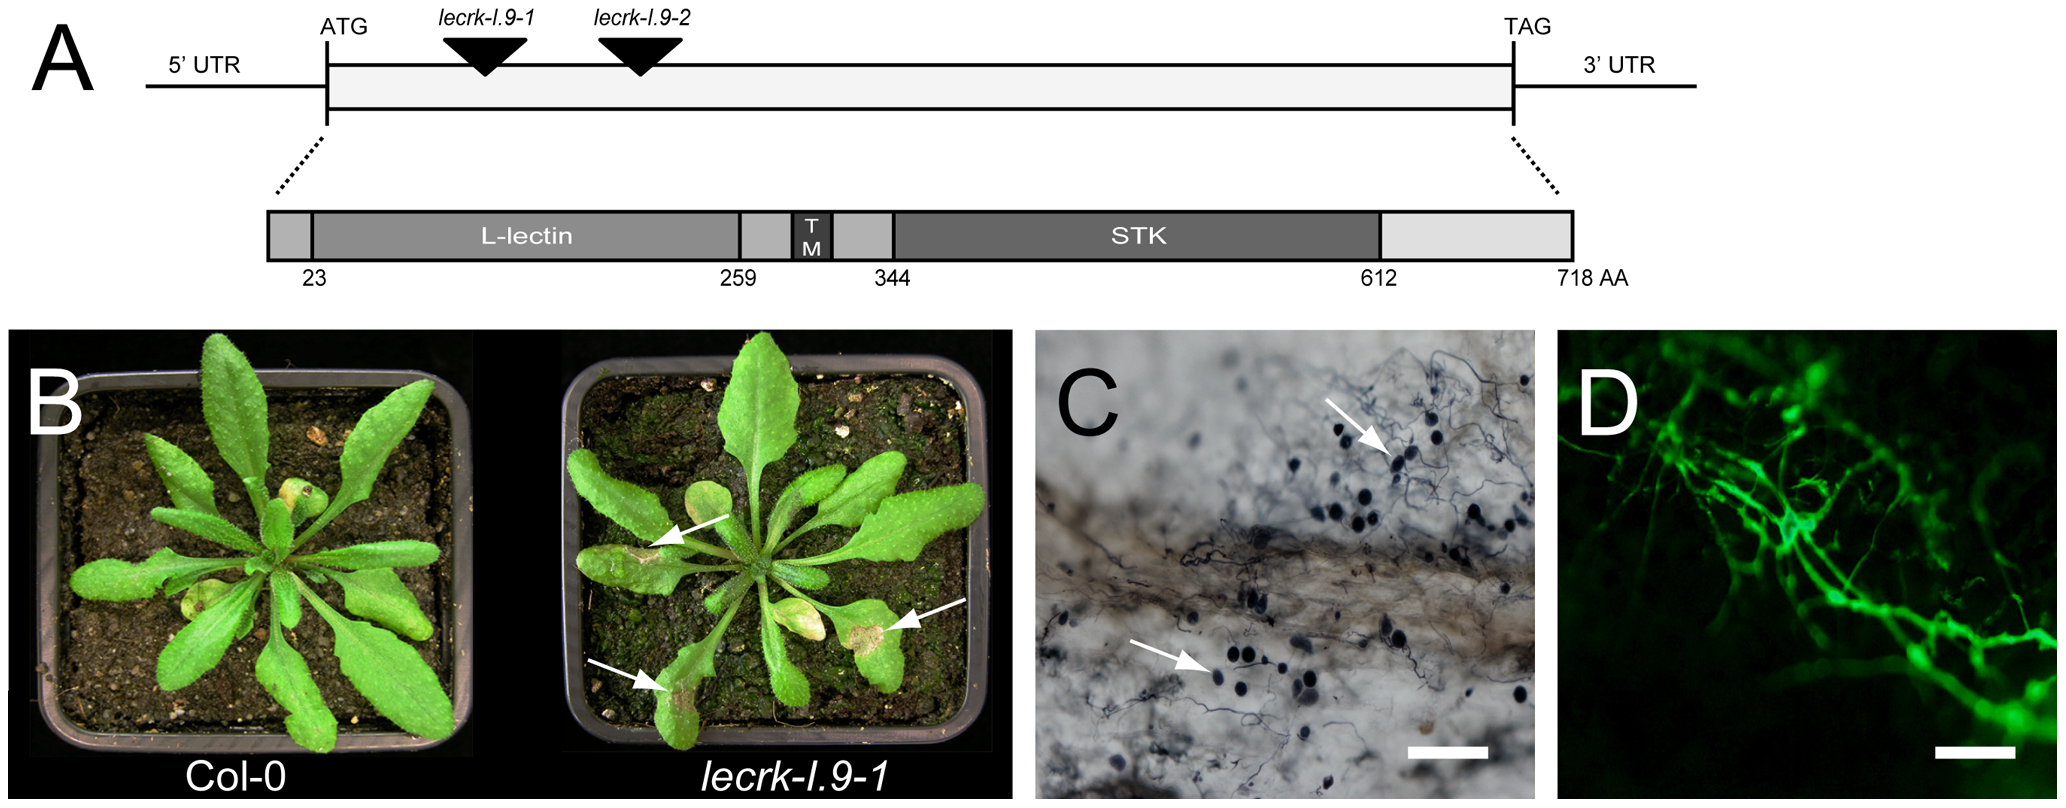 Arabidopsis mutants disrupted in <i>LecRK-I.9</i> are impaired in resistance to <i>P. brassicae</i>.